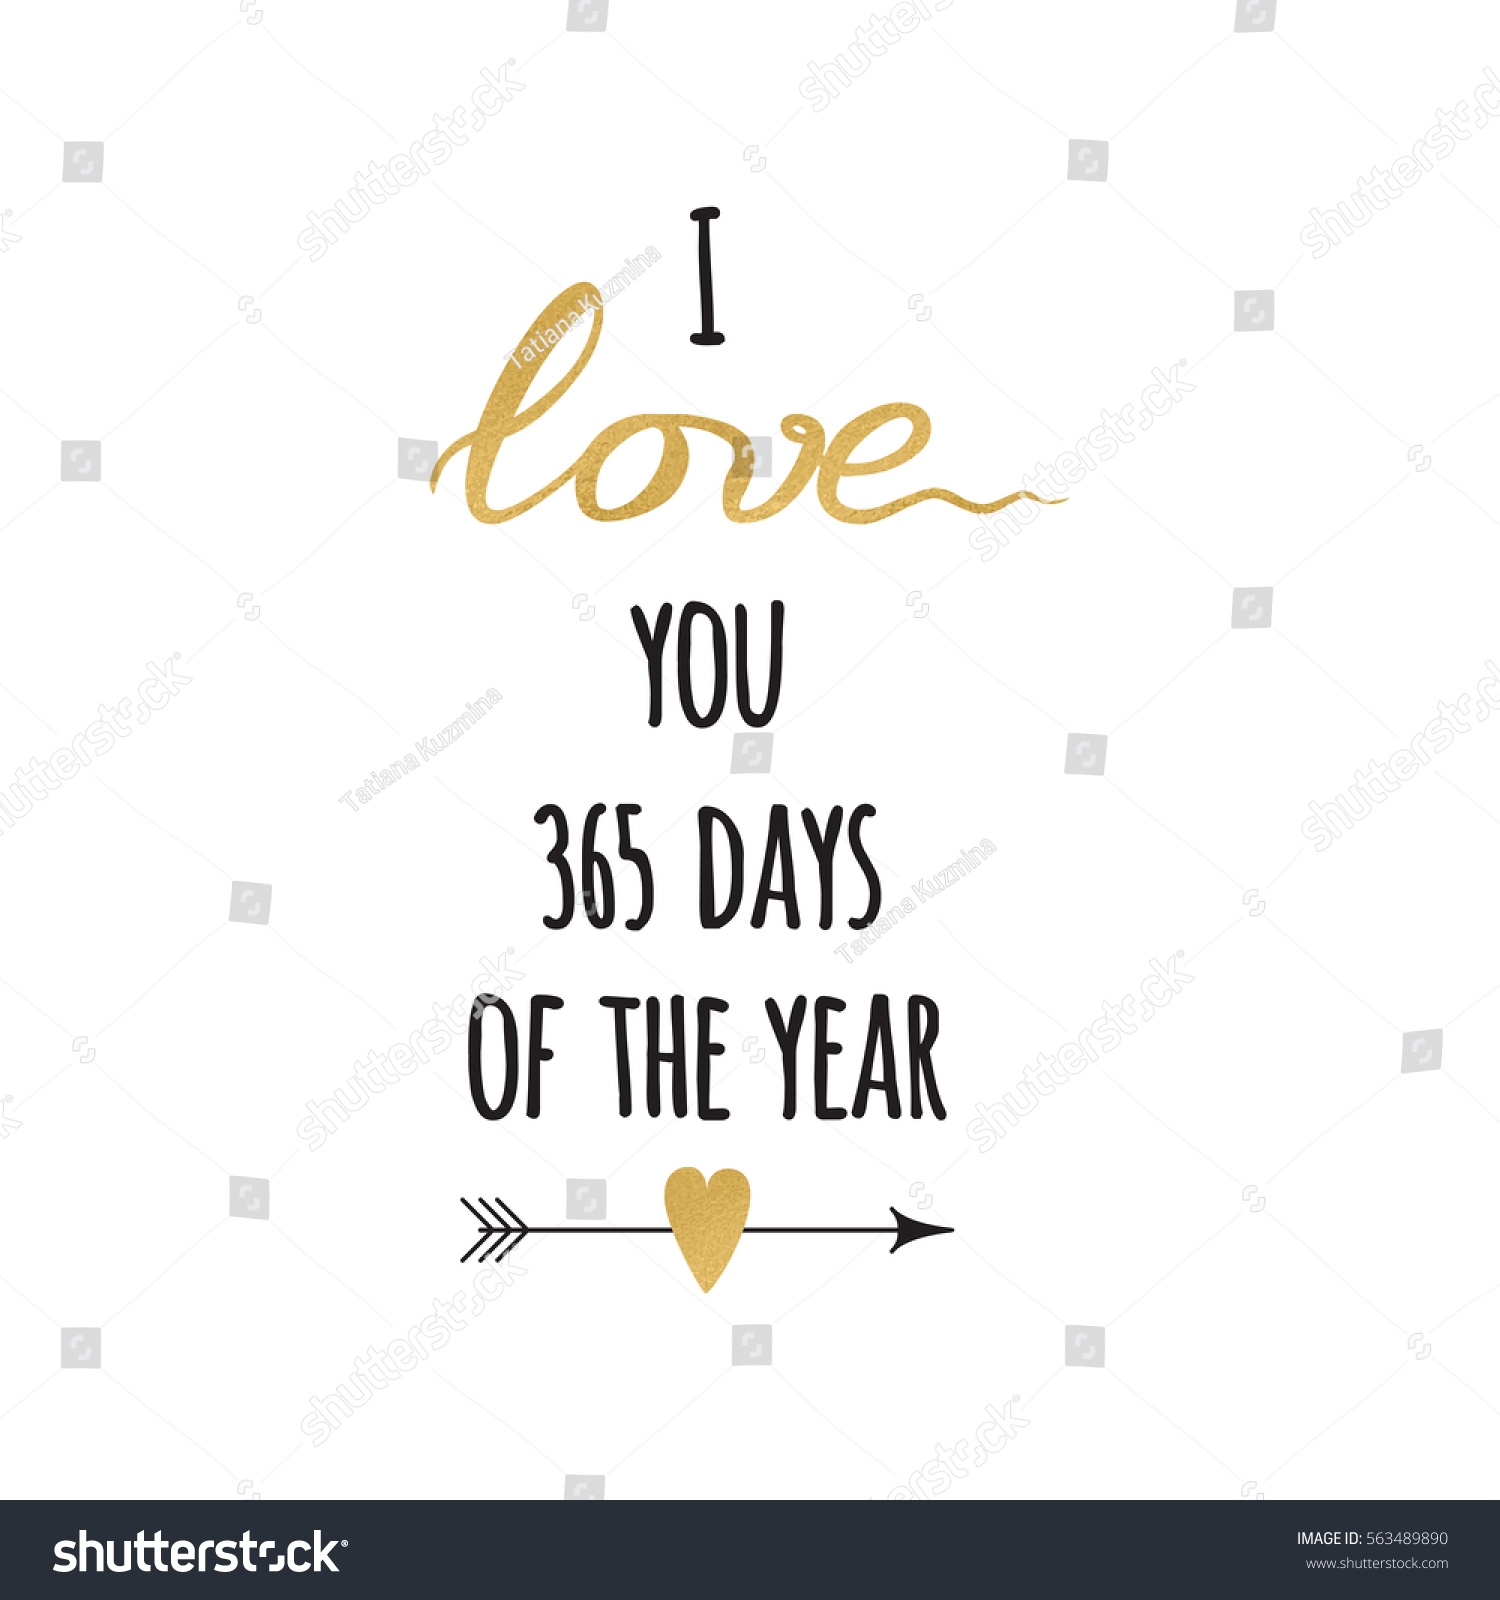 I Love You 365 Days Quotes : with sparkle inspirational hand drawn love quote I love you 365 days ...